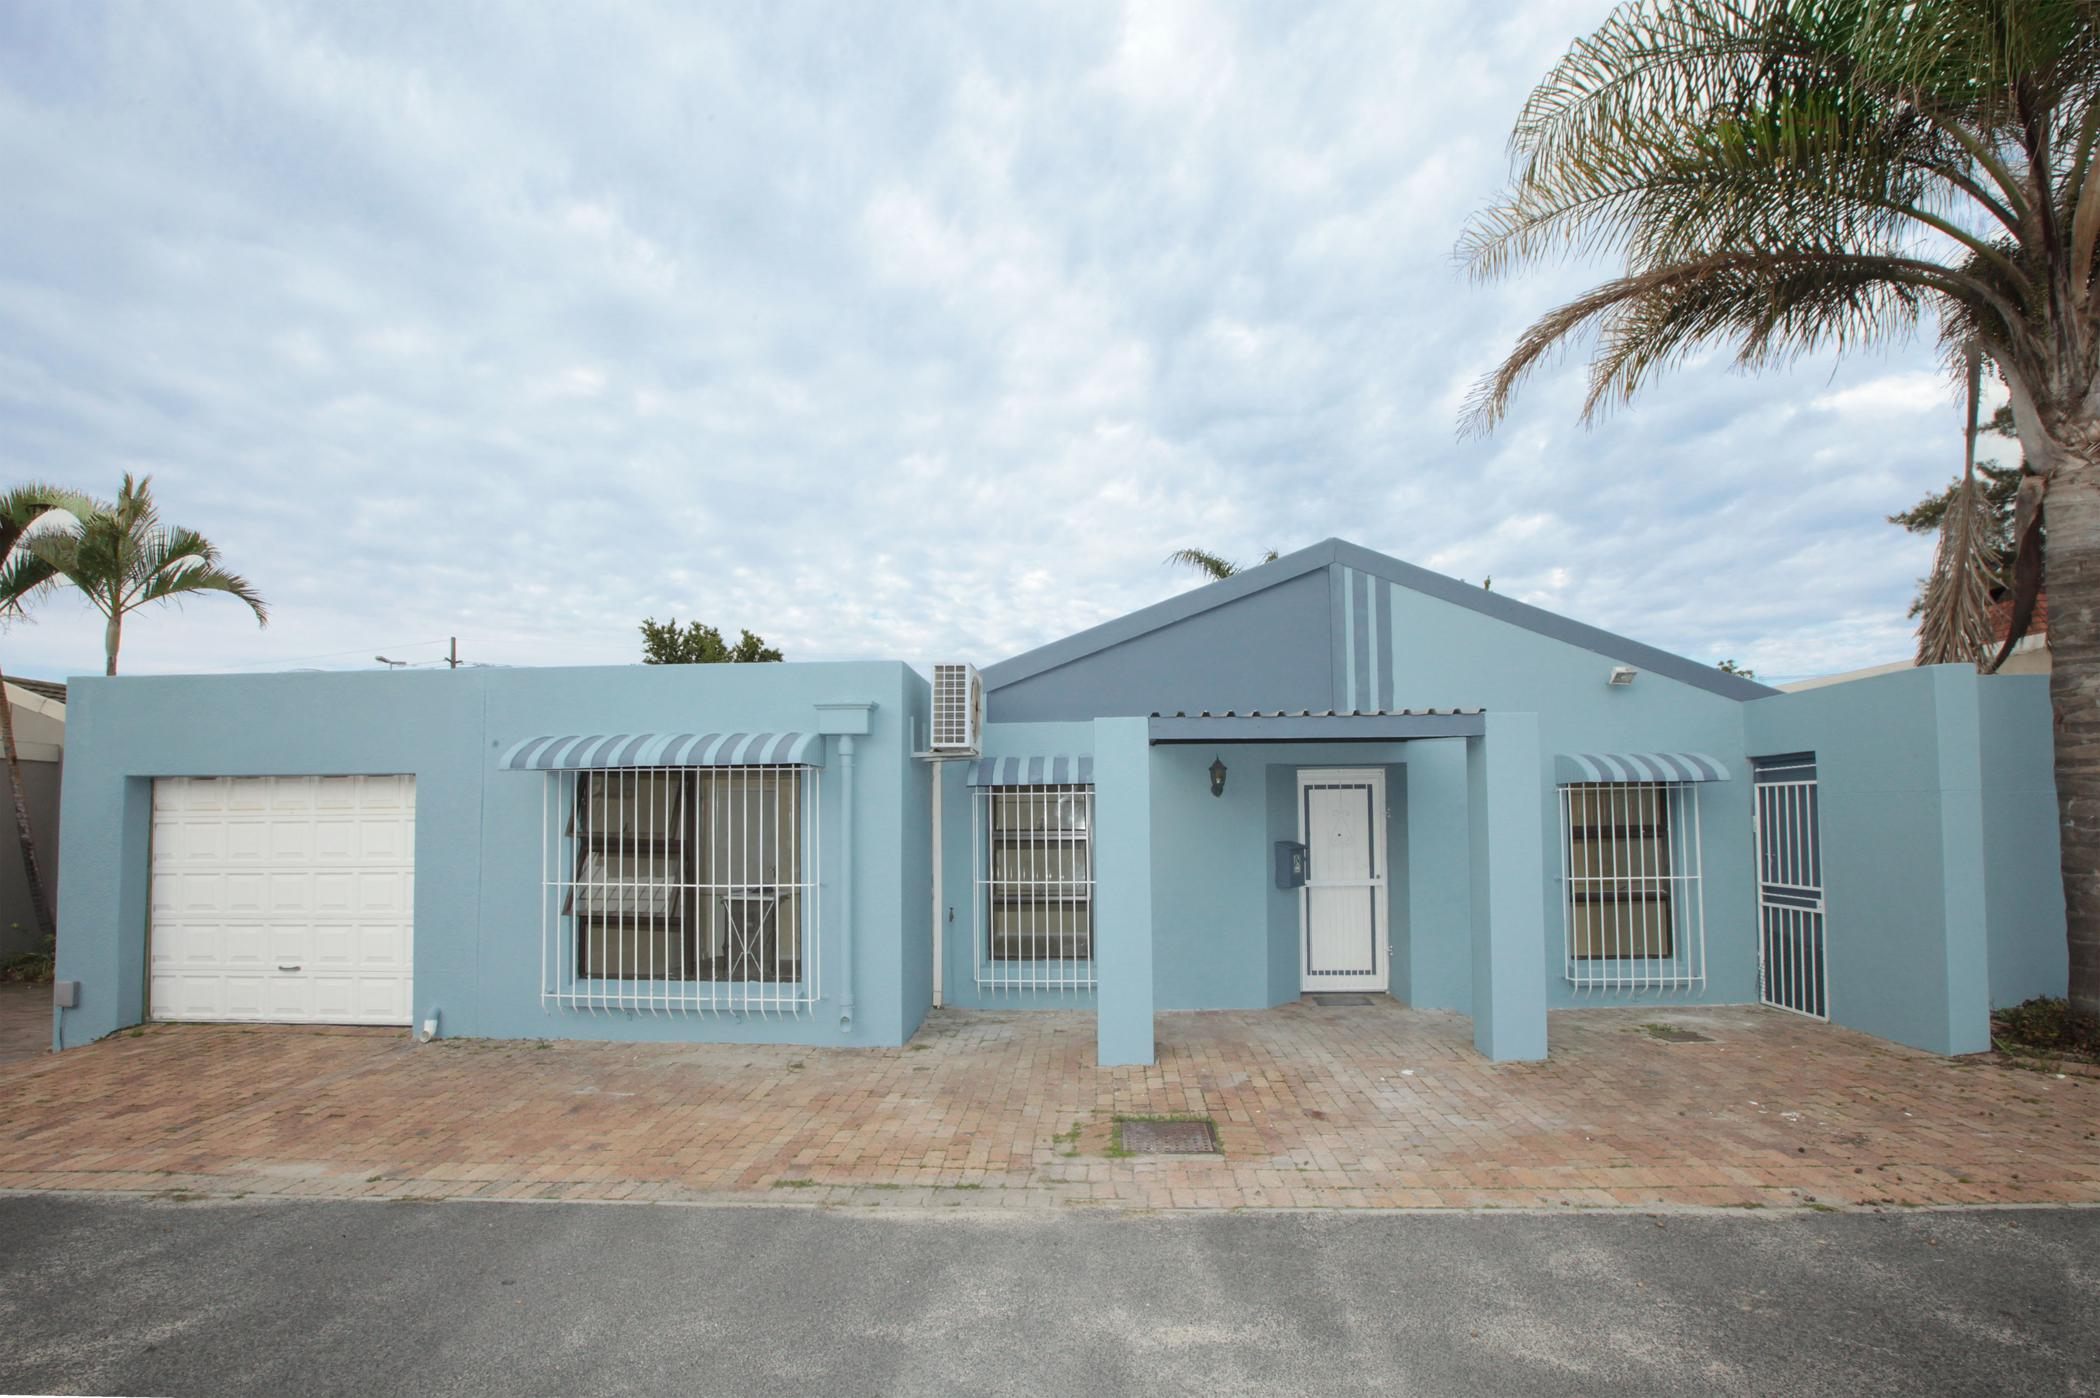 https://listing.pamgolding.co.za/images/properties/201910/1521405/H/1521405_H_1.jpg